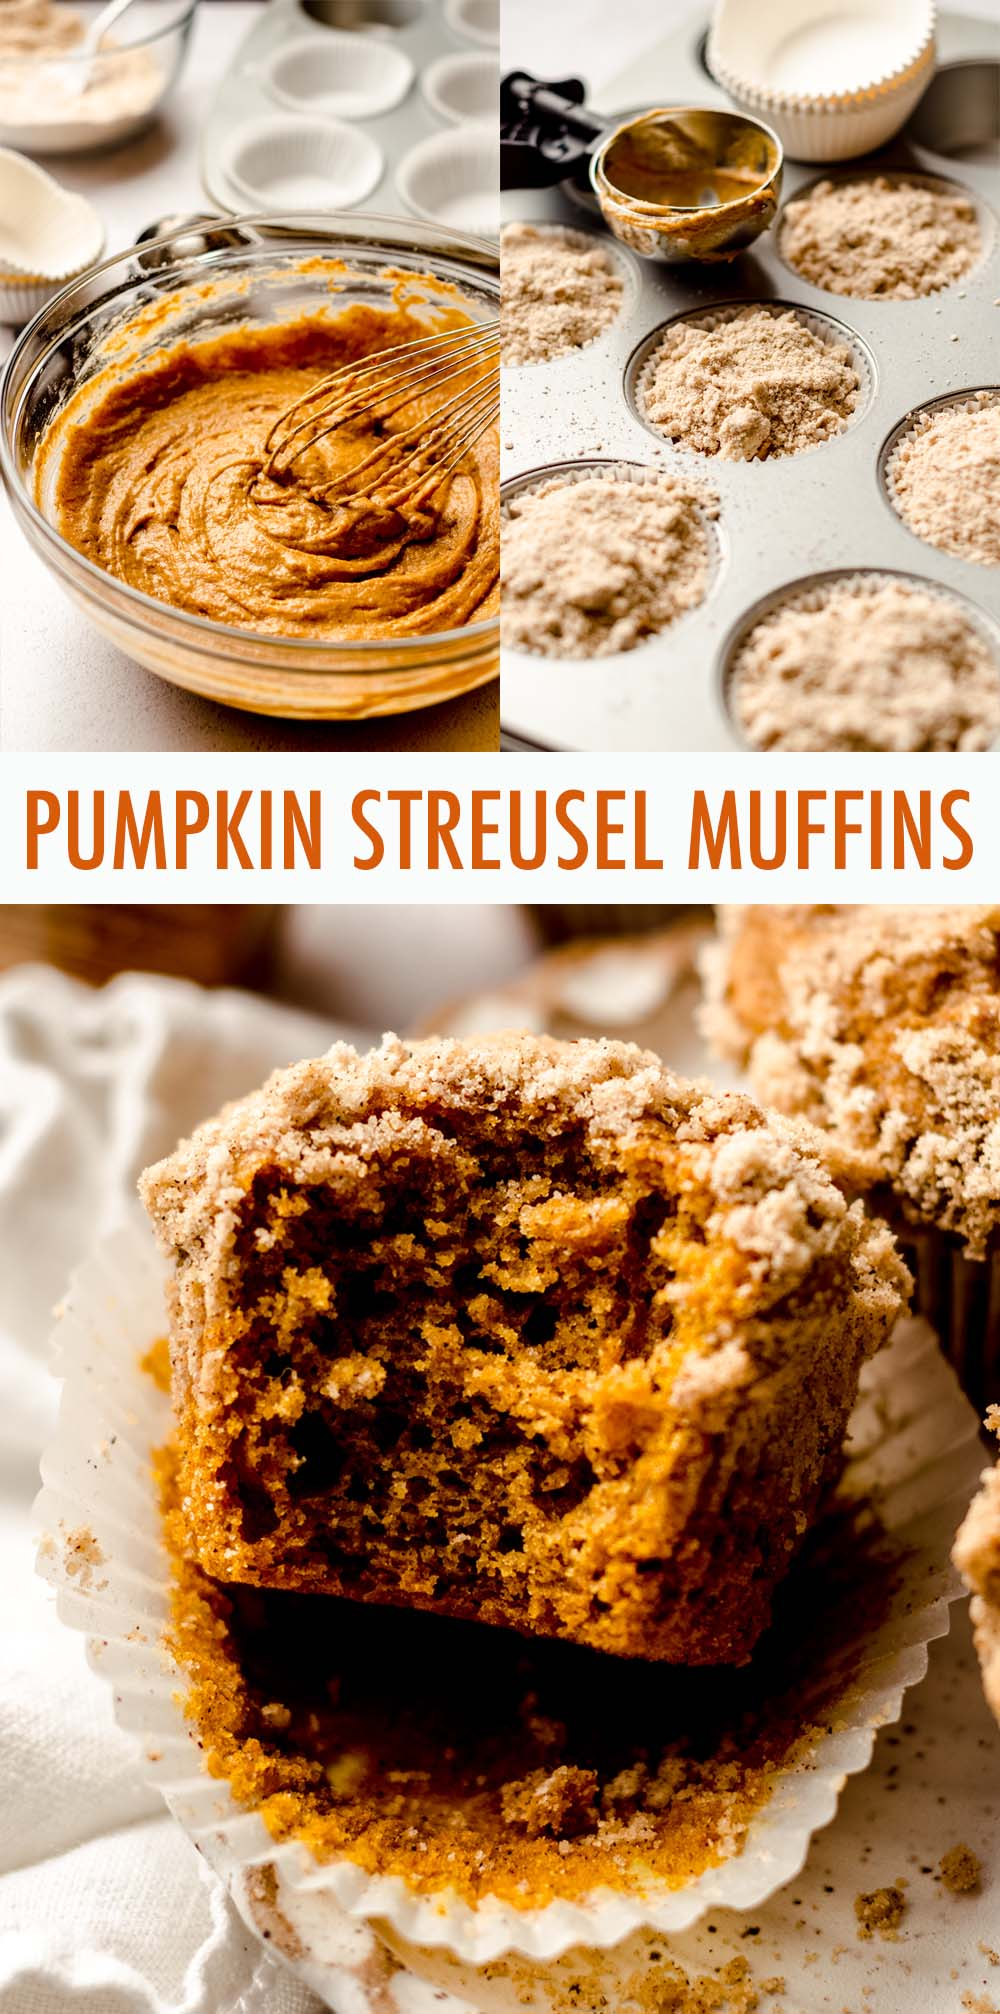 Moist and tender pumpkin muffins made with real pumpkin and all the warm flavors of fall, topped with an irresistible pumpkin spice streusel.